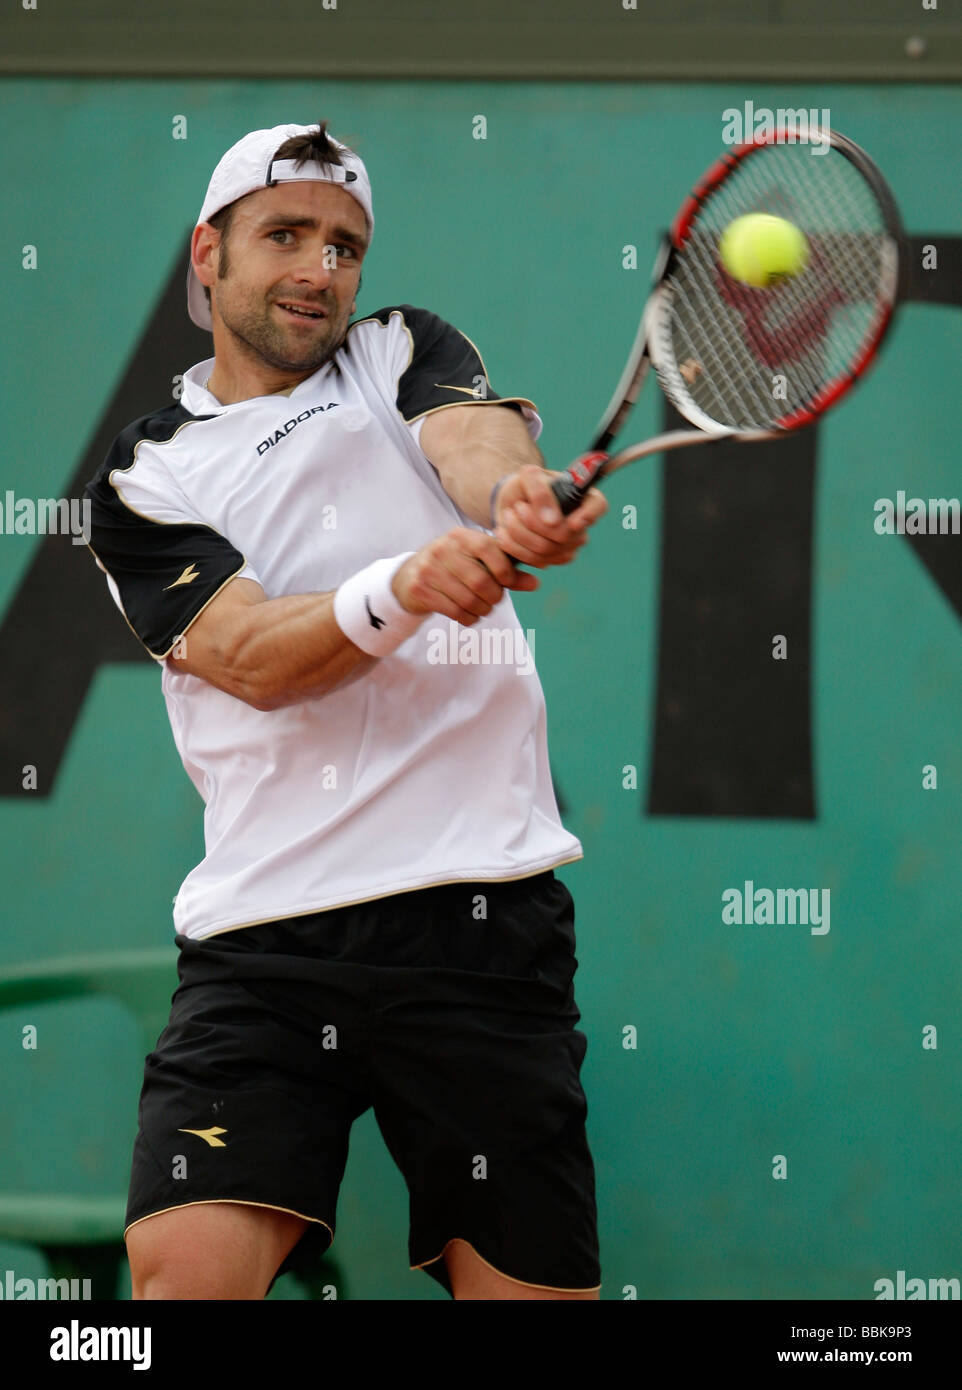 German player Nicolas Kiefer plays a backhand return at Roland Garros - Stock Image